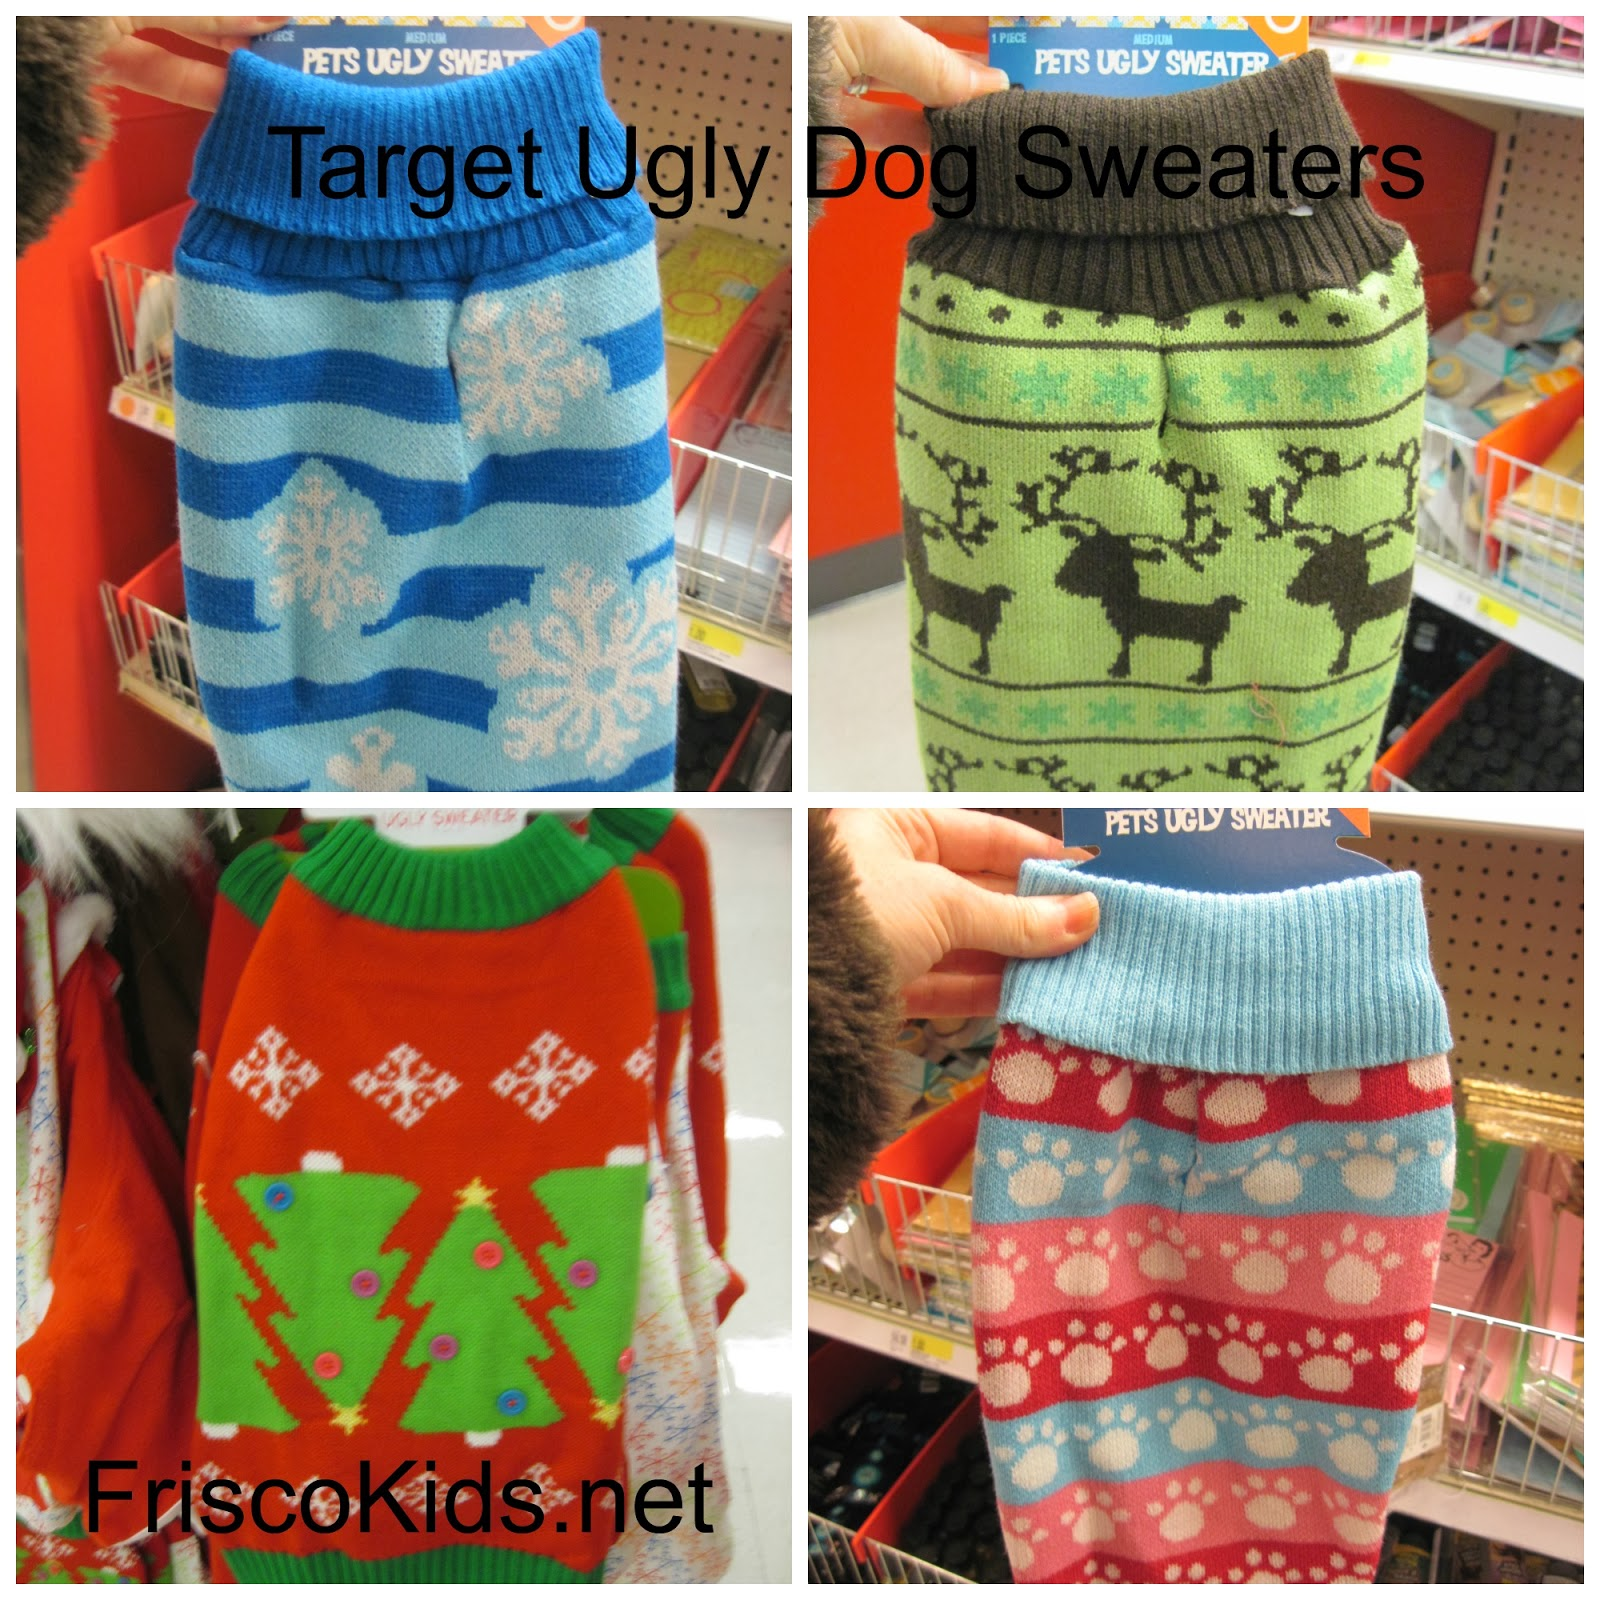 Target Dog Sweaters photo - 3